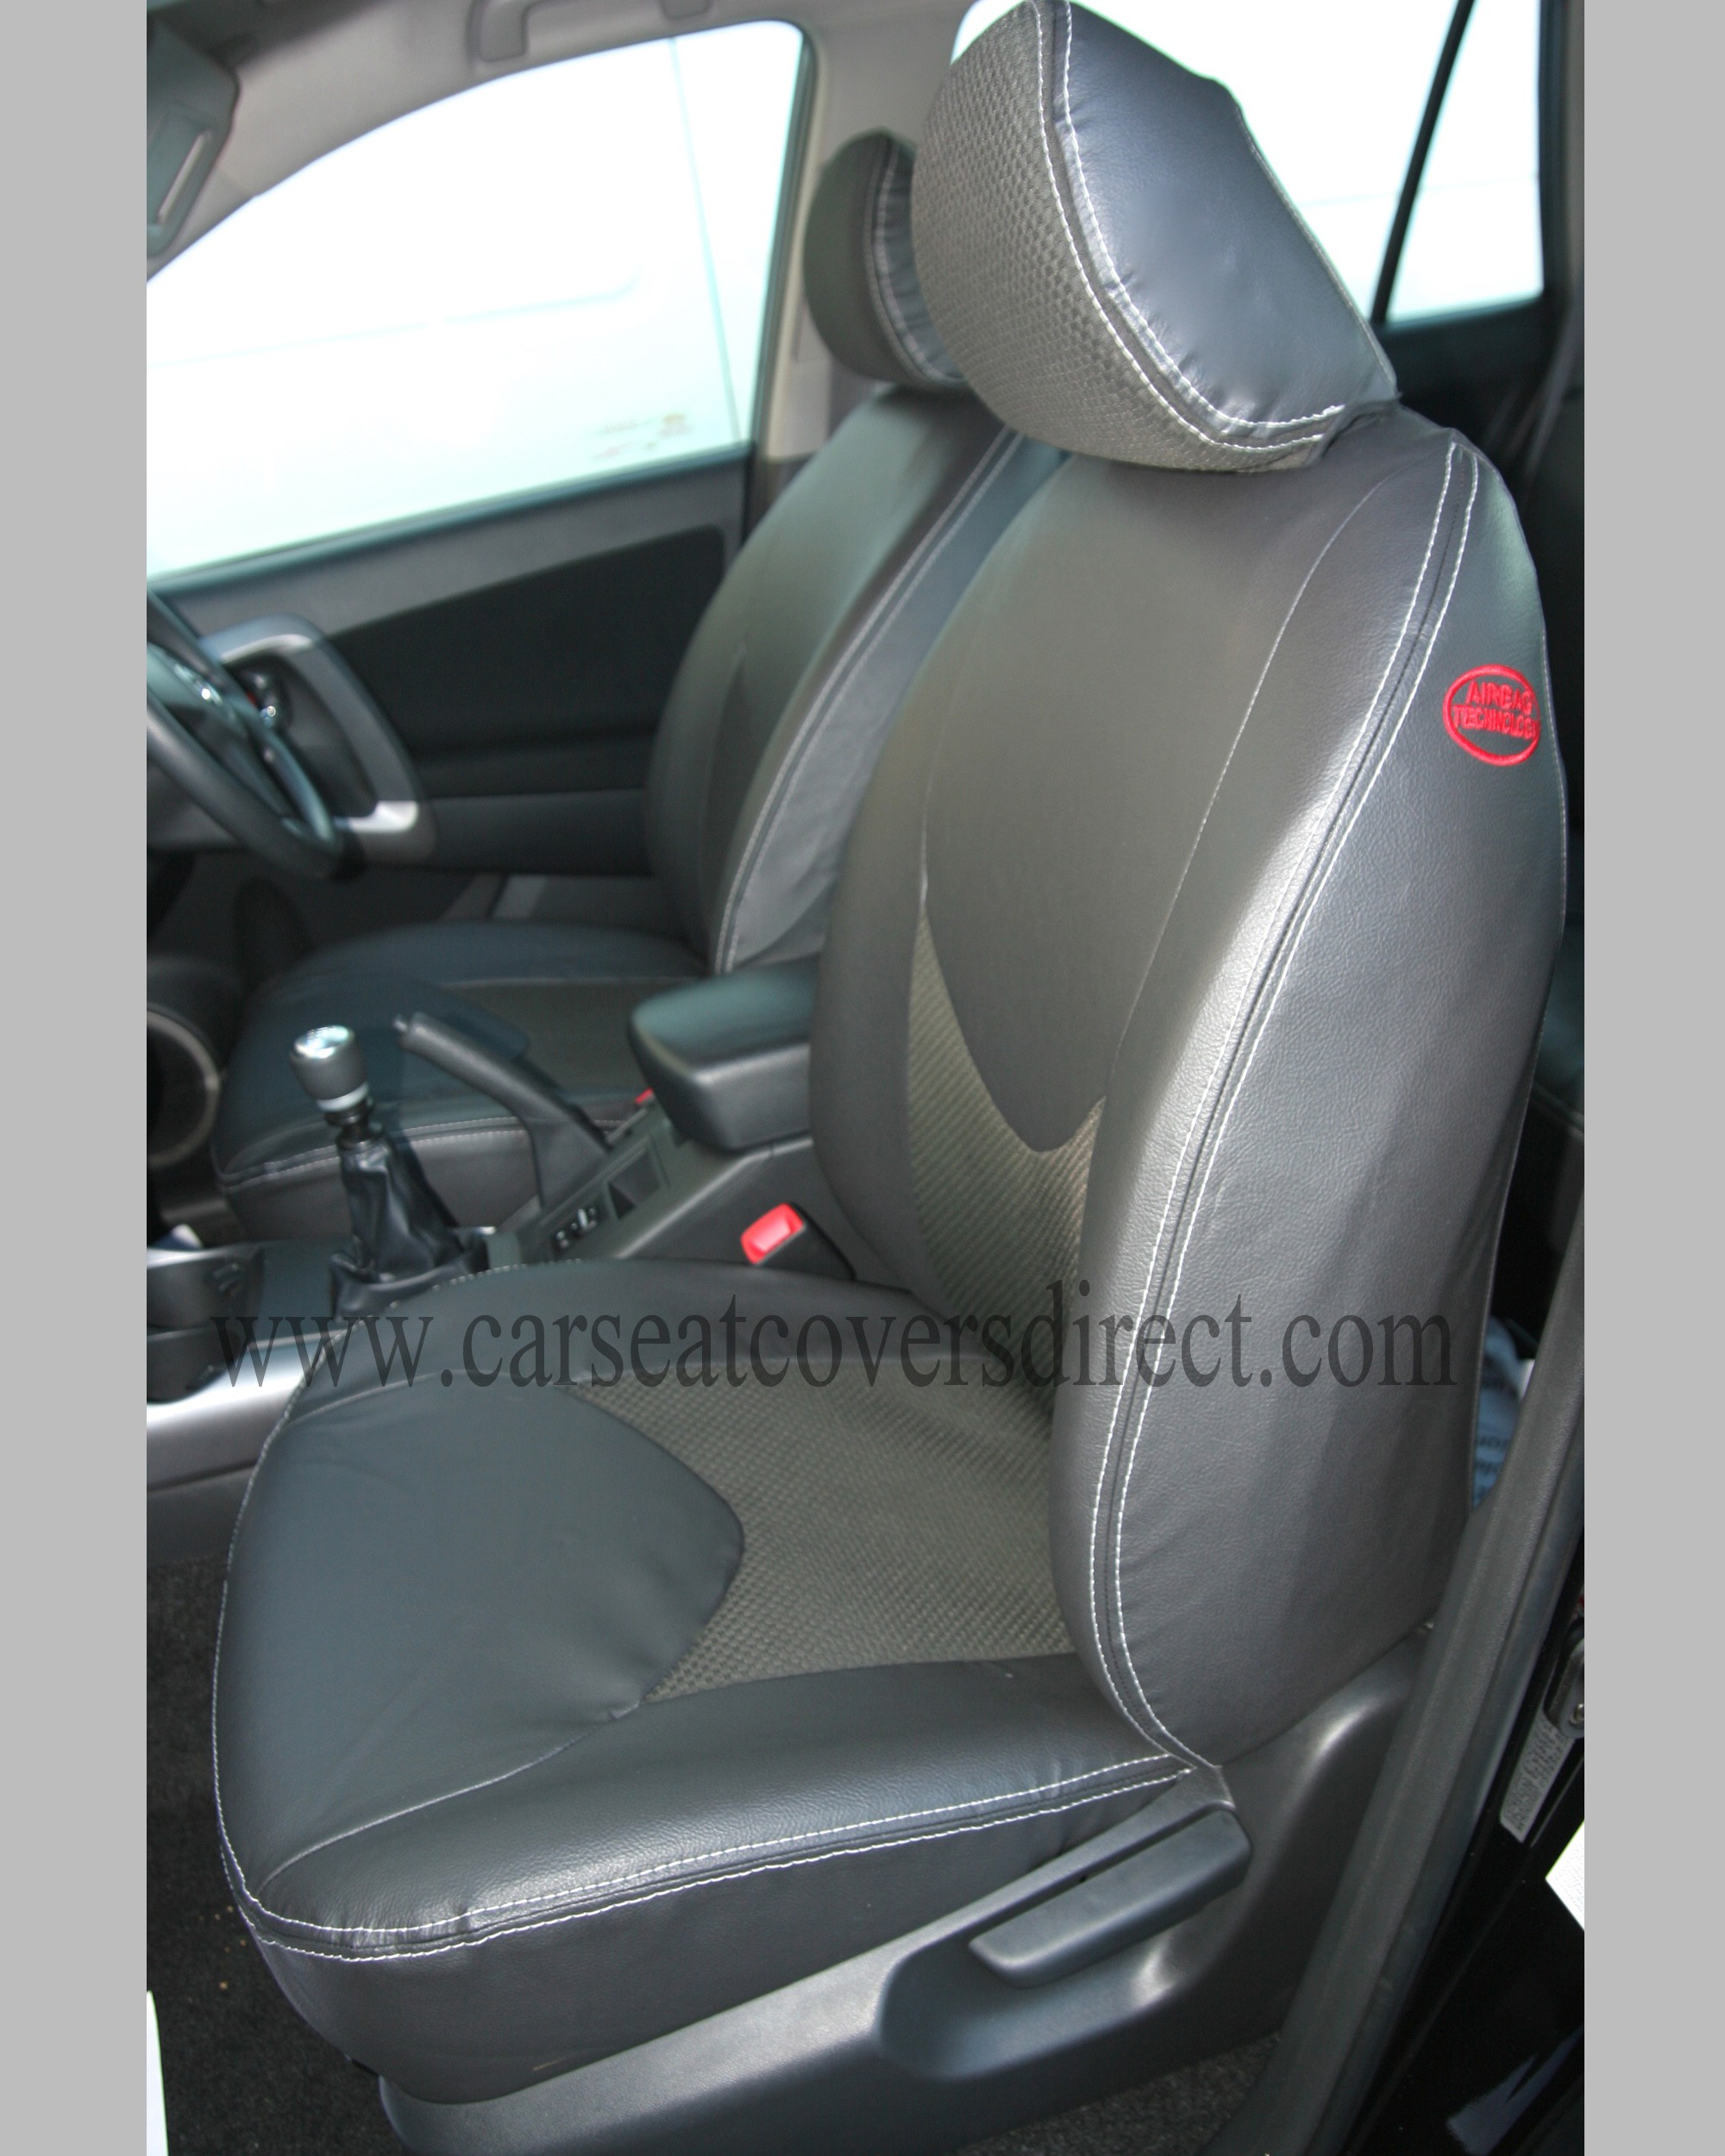 toyota rav 4 seat covers custom tailored seat covers car seat covers direct tailored to your. Black Bedroom Furniture Sets. Home Design Ideas